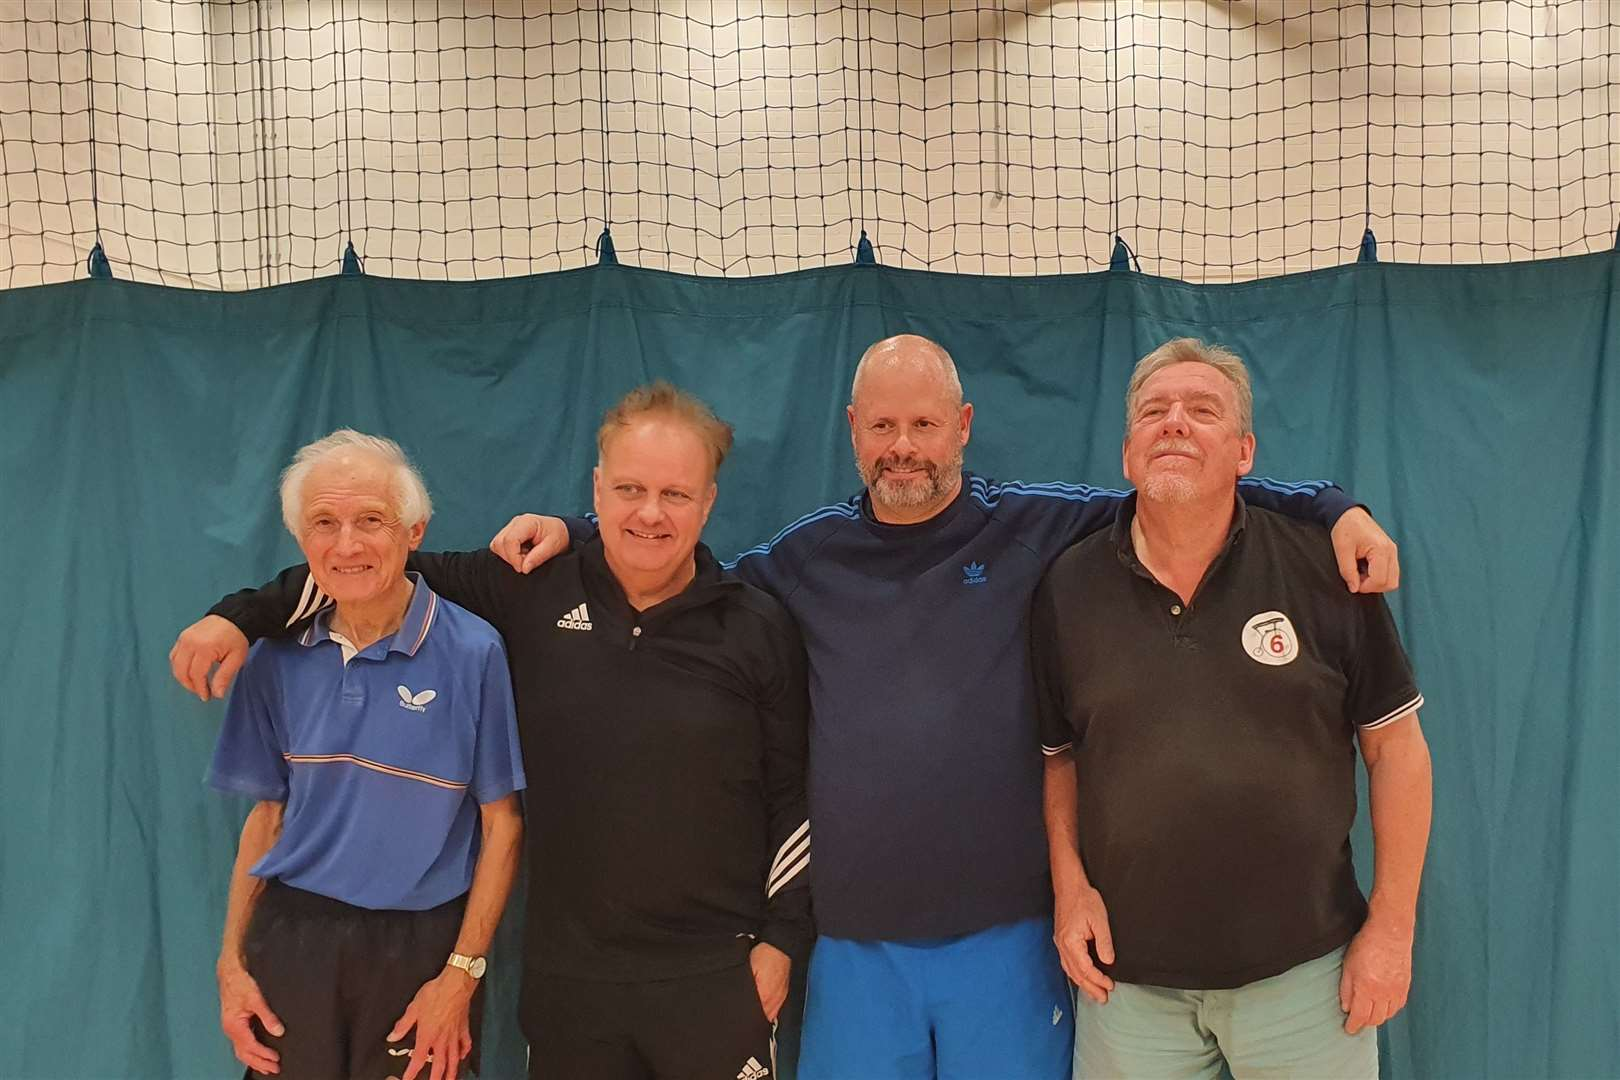 Phil Paine and John Price, of Snitterfield, with their opponents Nigel Payne and Tim Fell of Henley.